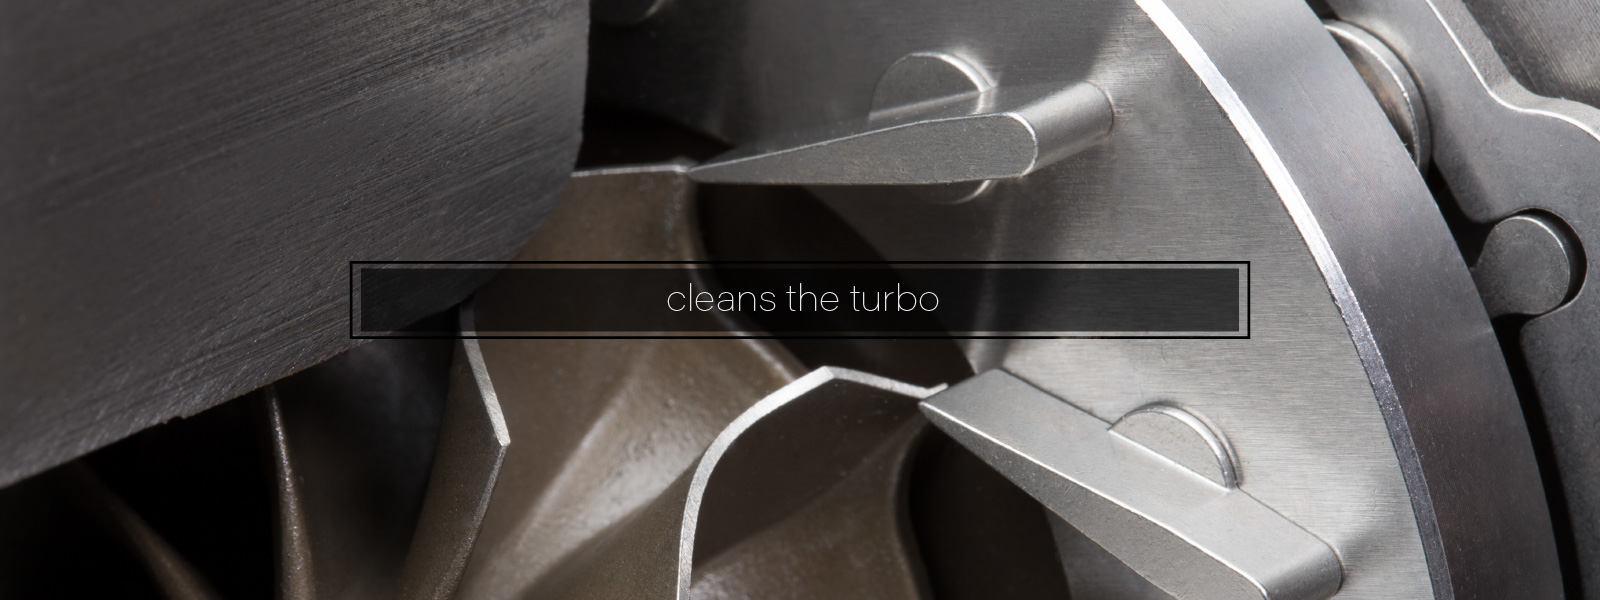 Cleans The Turbo